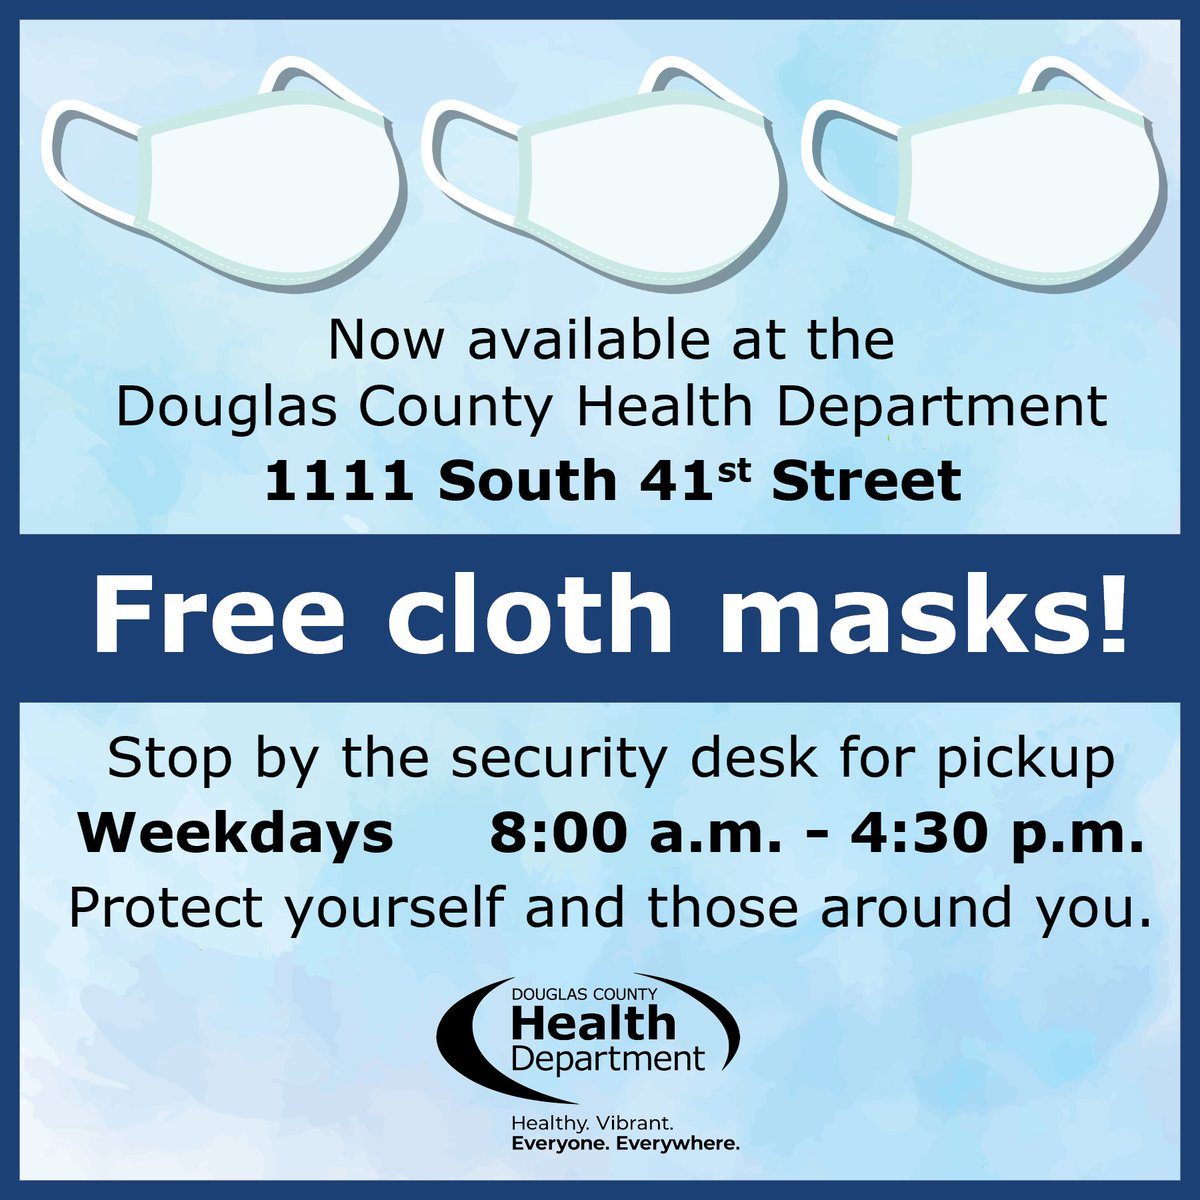 It doesn't get much easier than this. Stop by today. #MaskUpMetro #NECOVID19 #InThisTogether @UNMCCOPH @NEDHHS @Omaha_Scanner @DCTreasurer @OmahaFireDept @OmahaPolice @DouglasCountyNE @DCSheriffNE @noiseomaha @eternaltattooomaha @500millennialsomaha